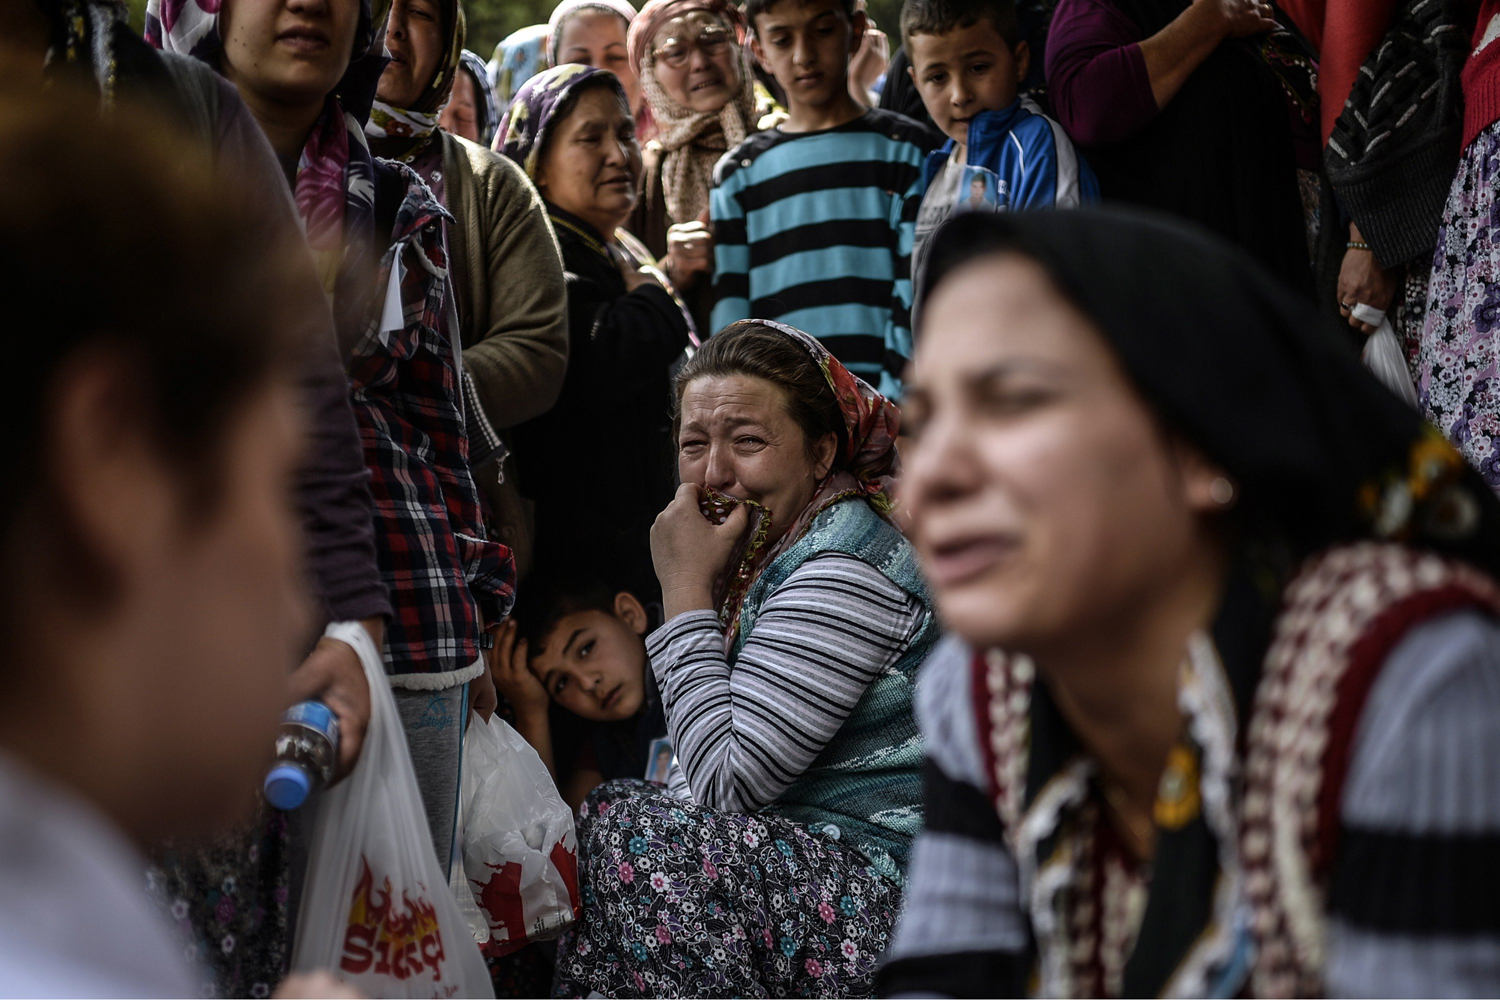 People cry during a funeral ceremony for miners who died in an explosion in western Turkish province of Manisa, May 15, 2014.